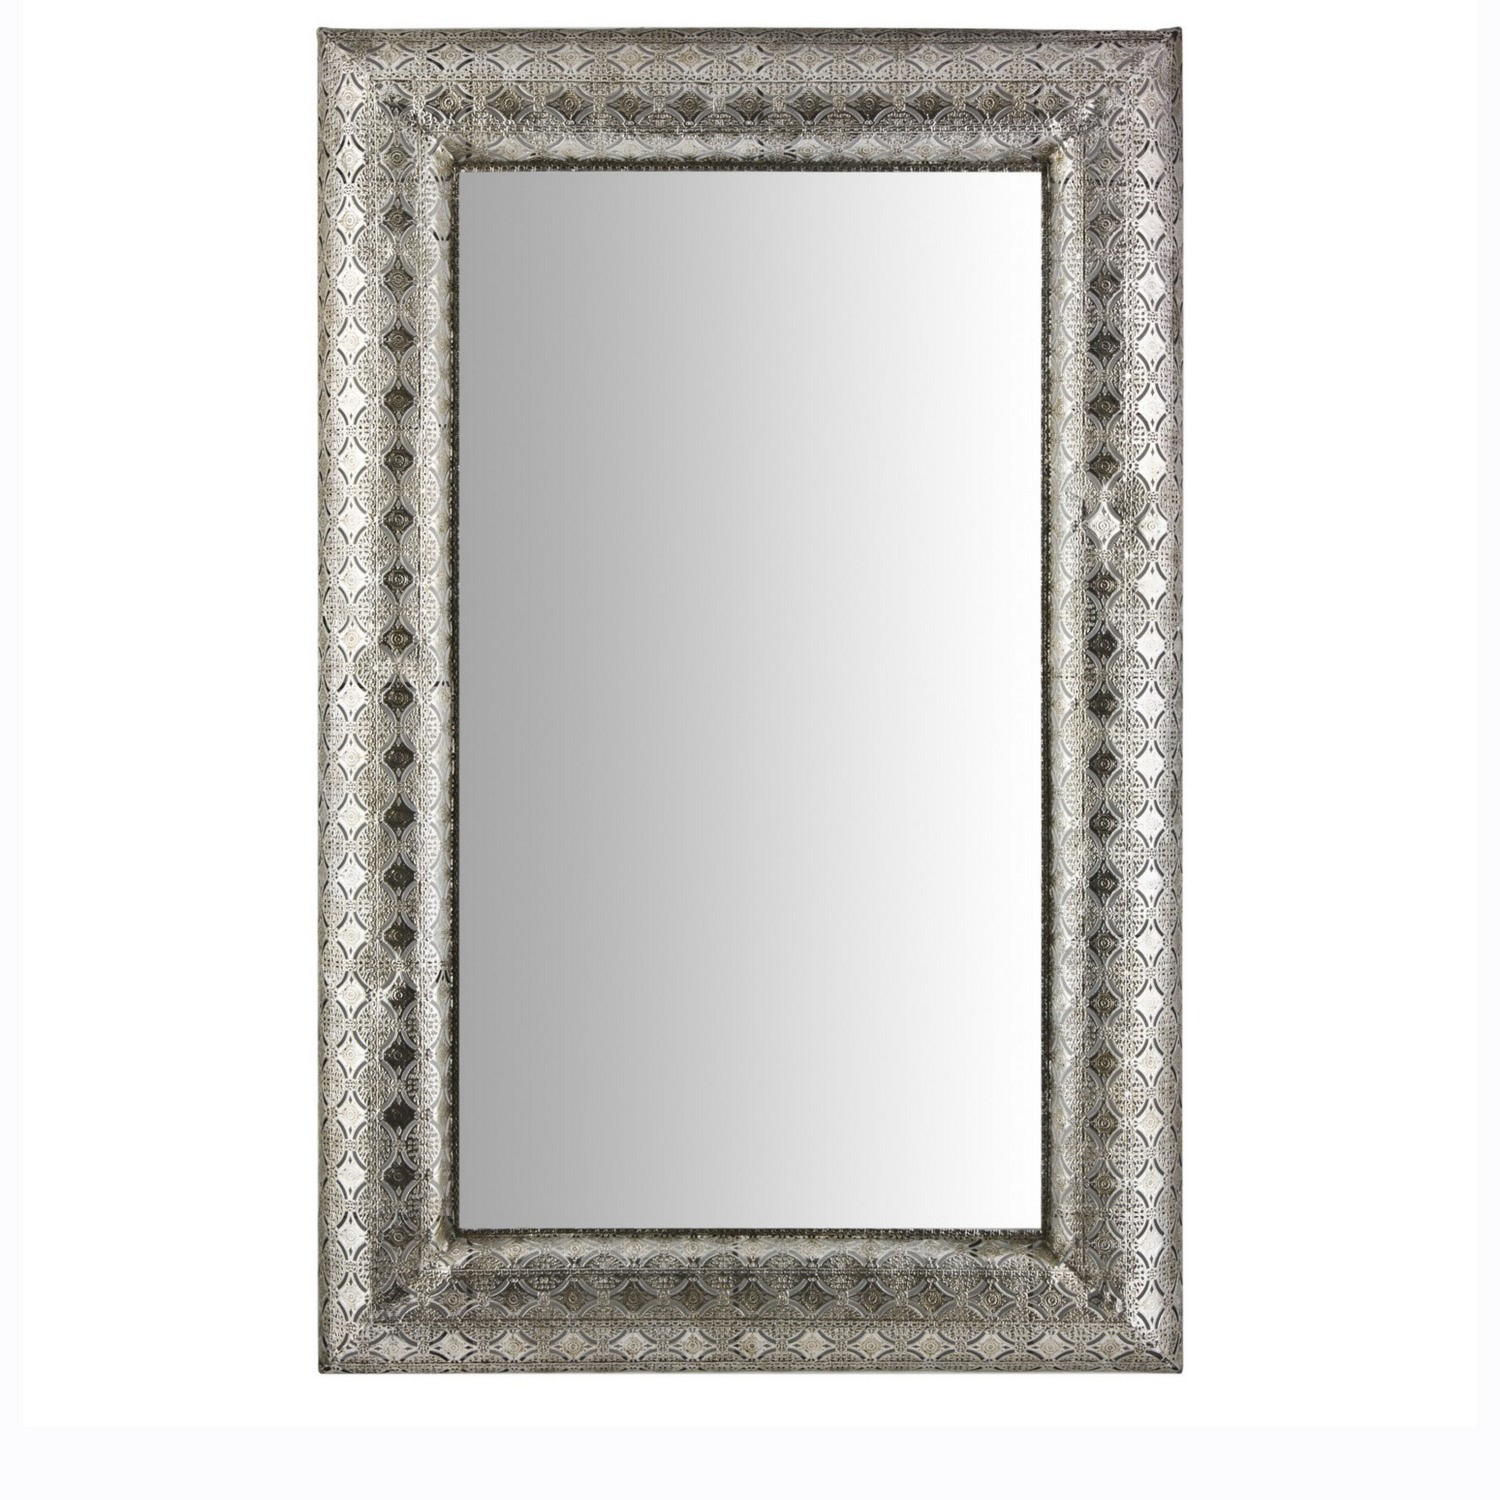 Wall Mounted & Hanging Mirrors   The Range Pertaining To Polen Traditional Wall Mirrors (View 16 of 20)